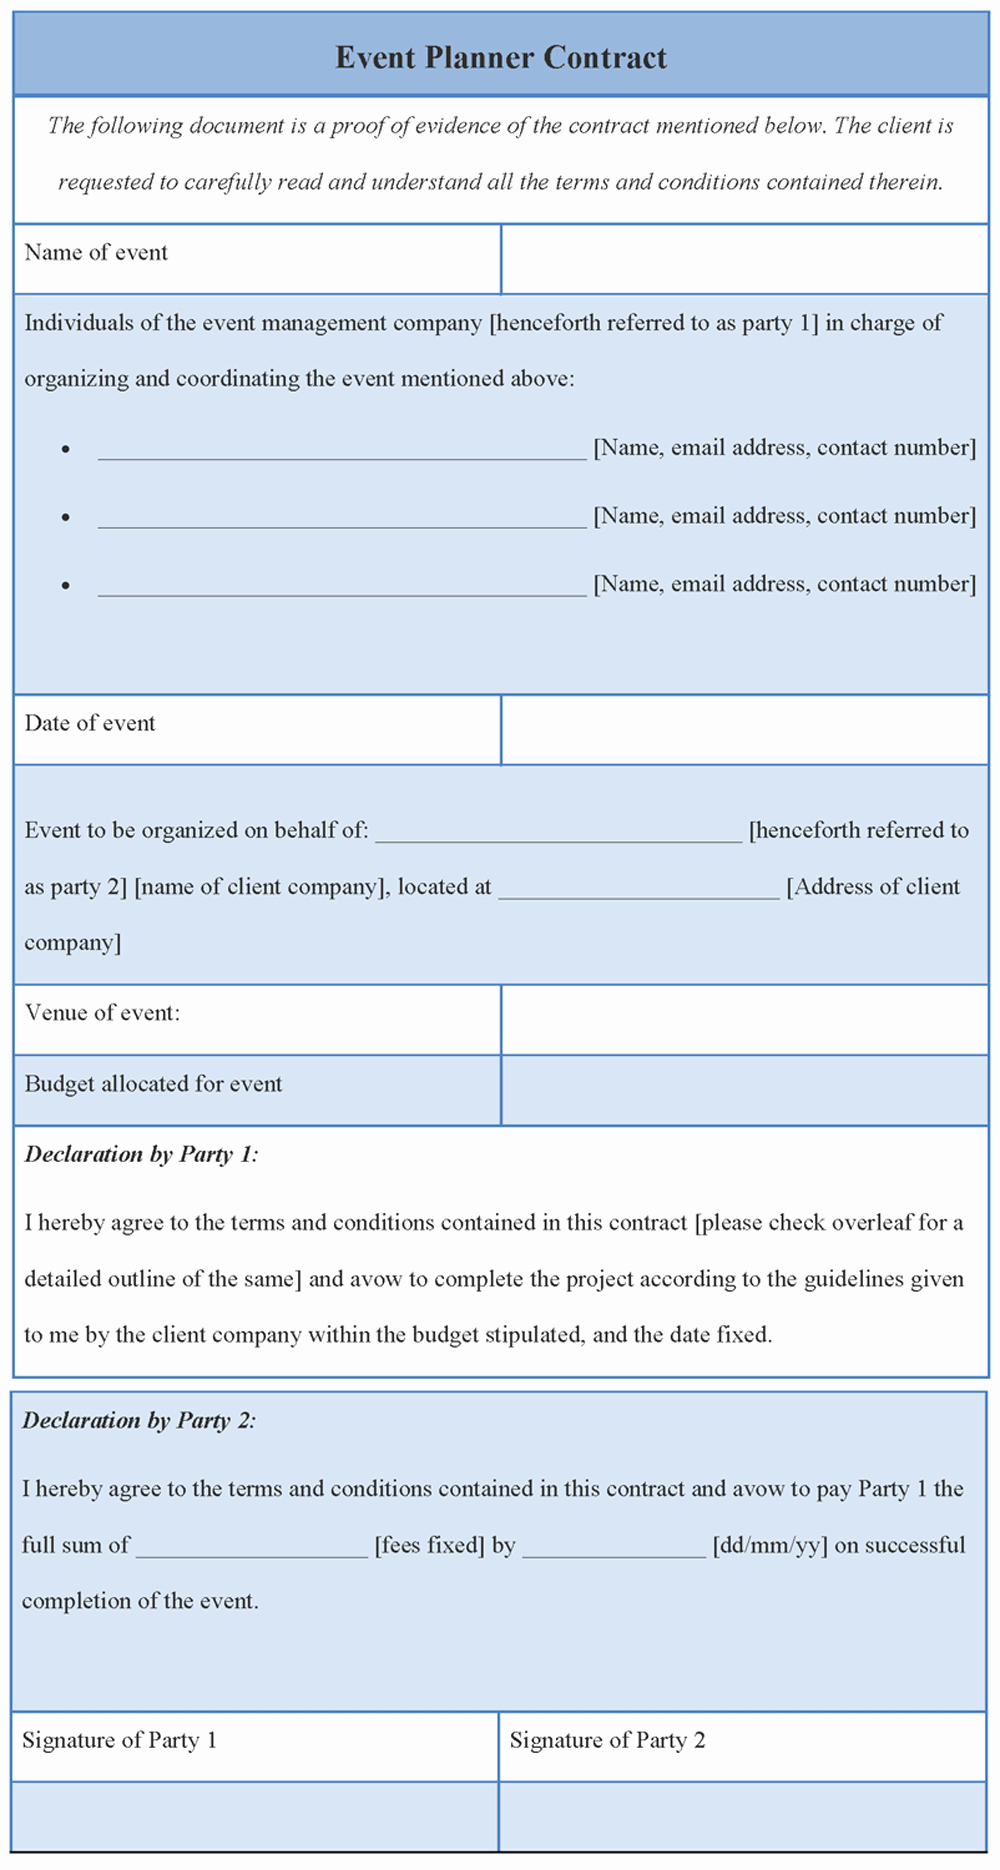 Event Planner Contract Template Elegant Contract Template for event Planner format Of event